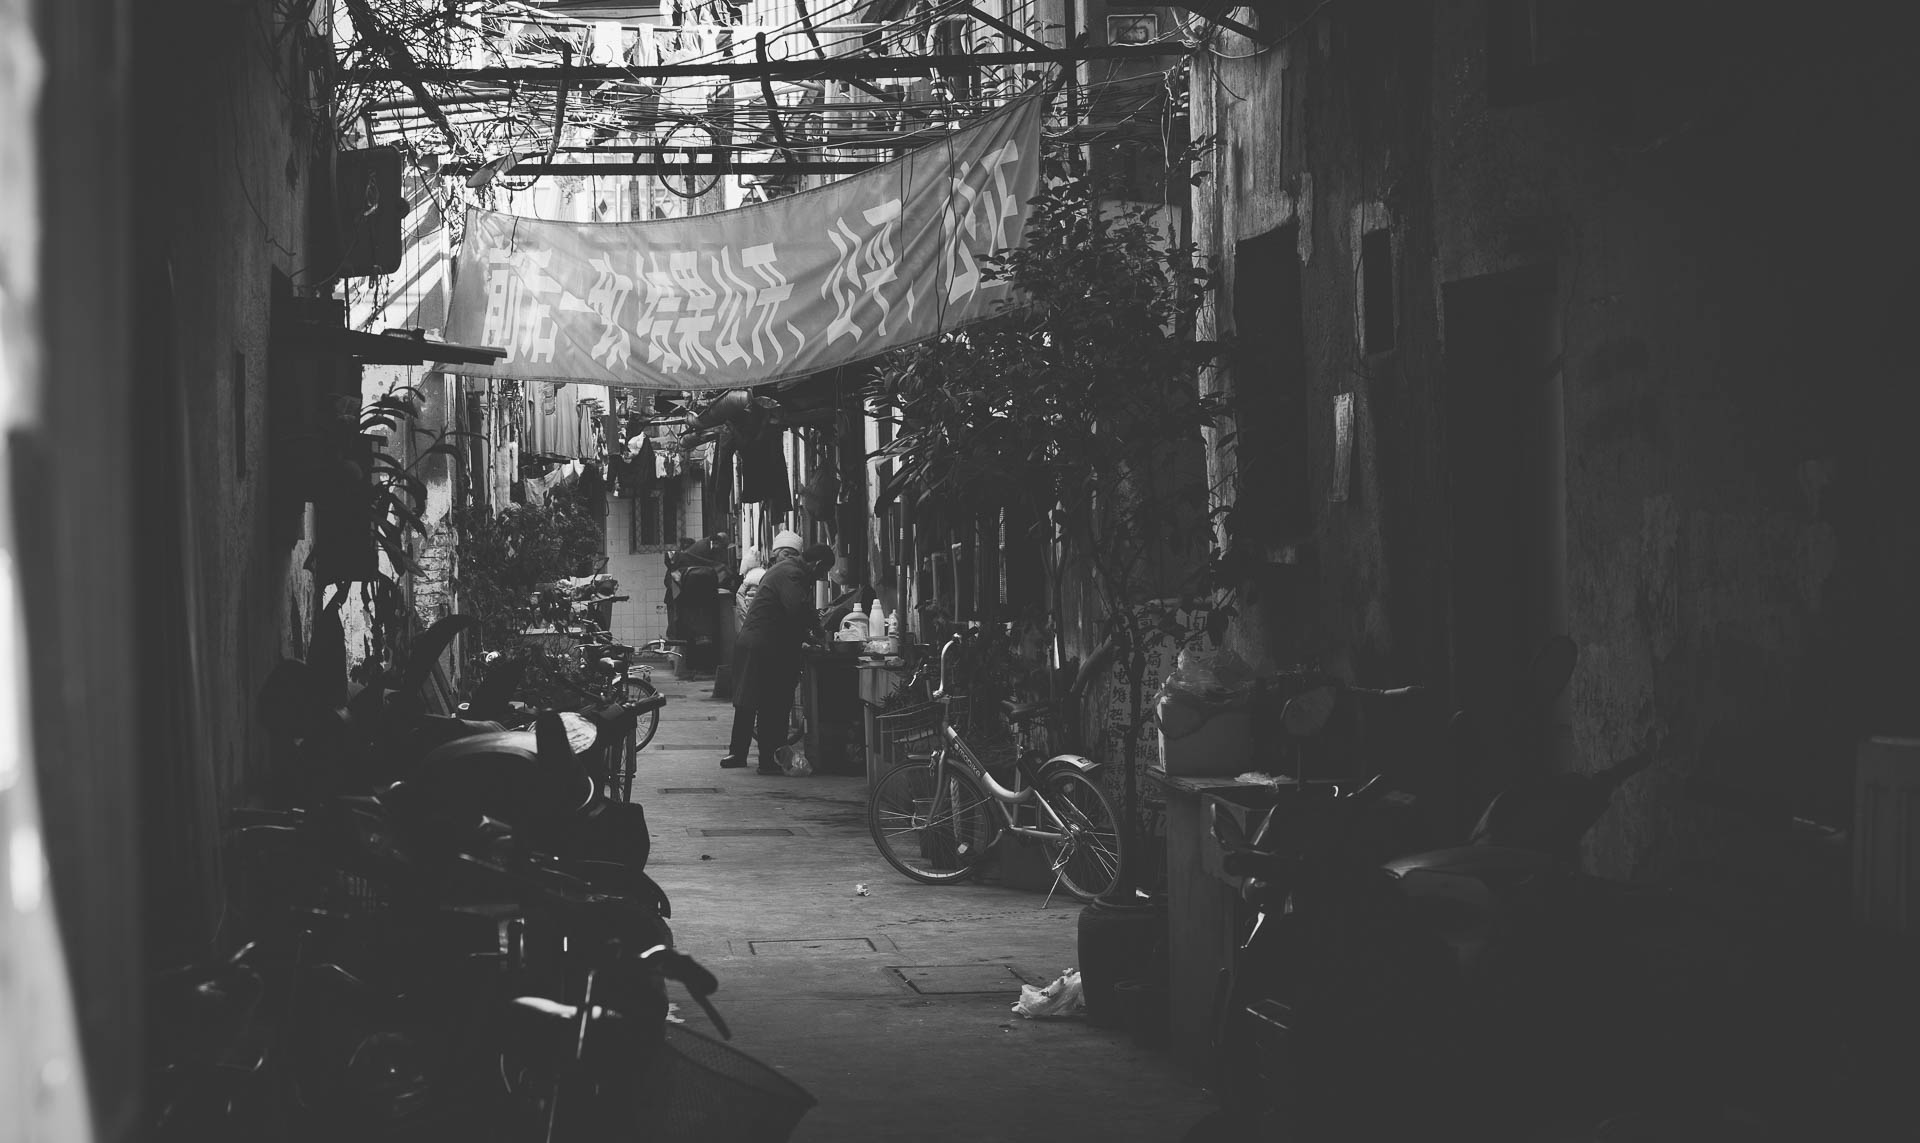 Shanghai Backalley